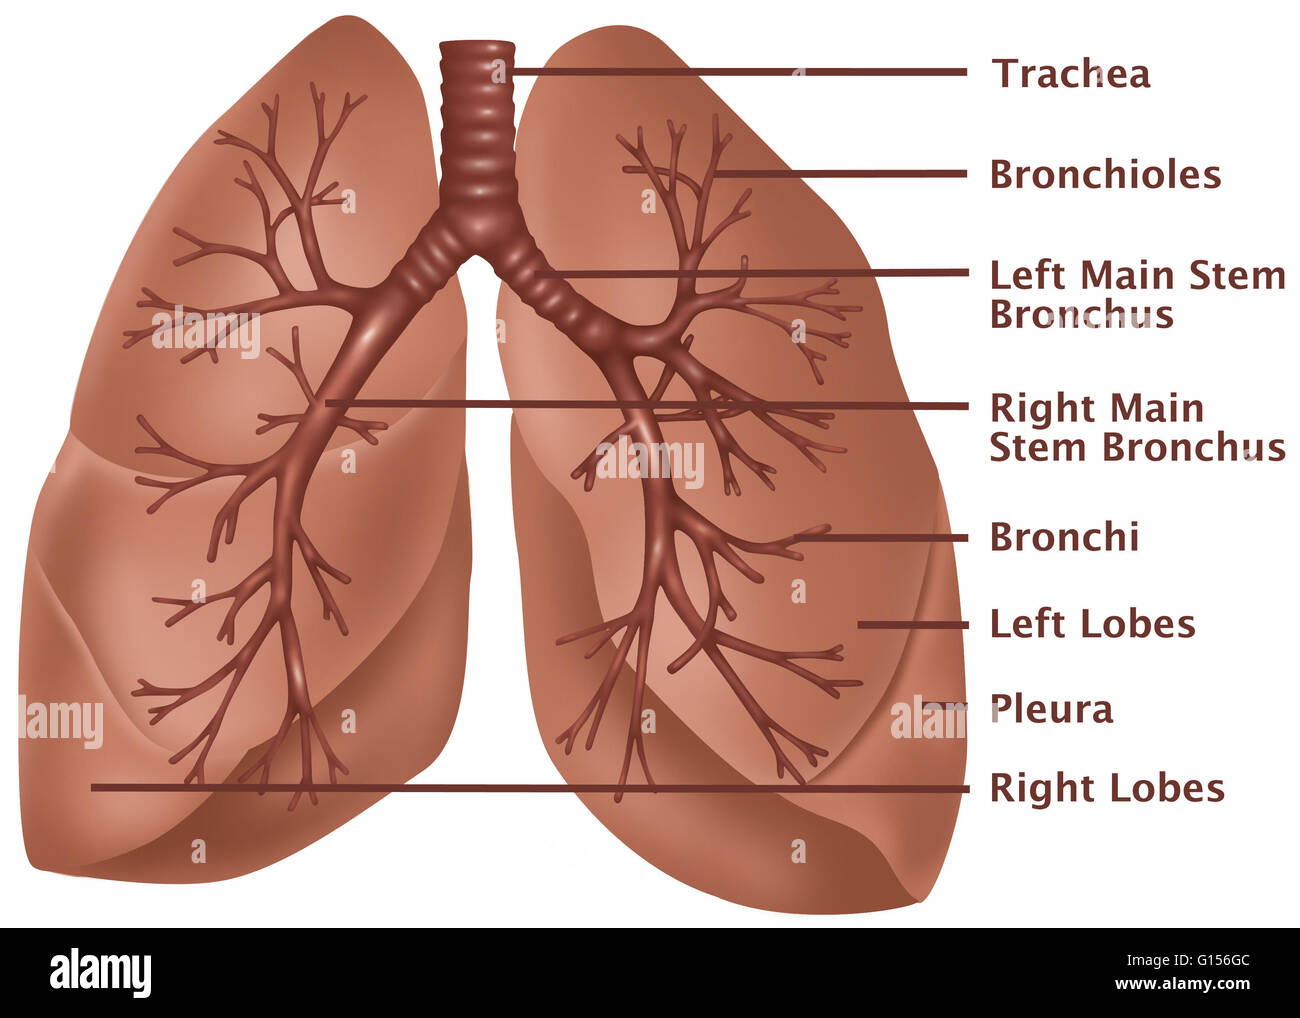 bronchi and bronchioles relationship help